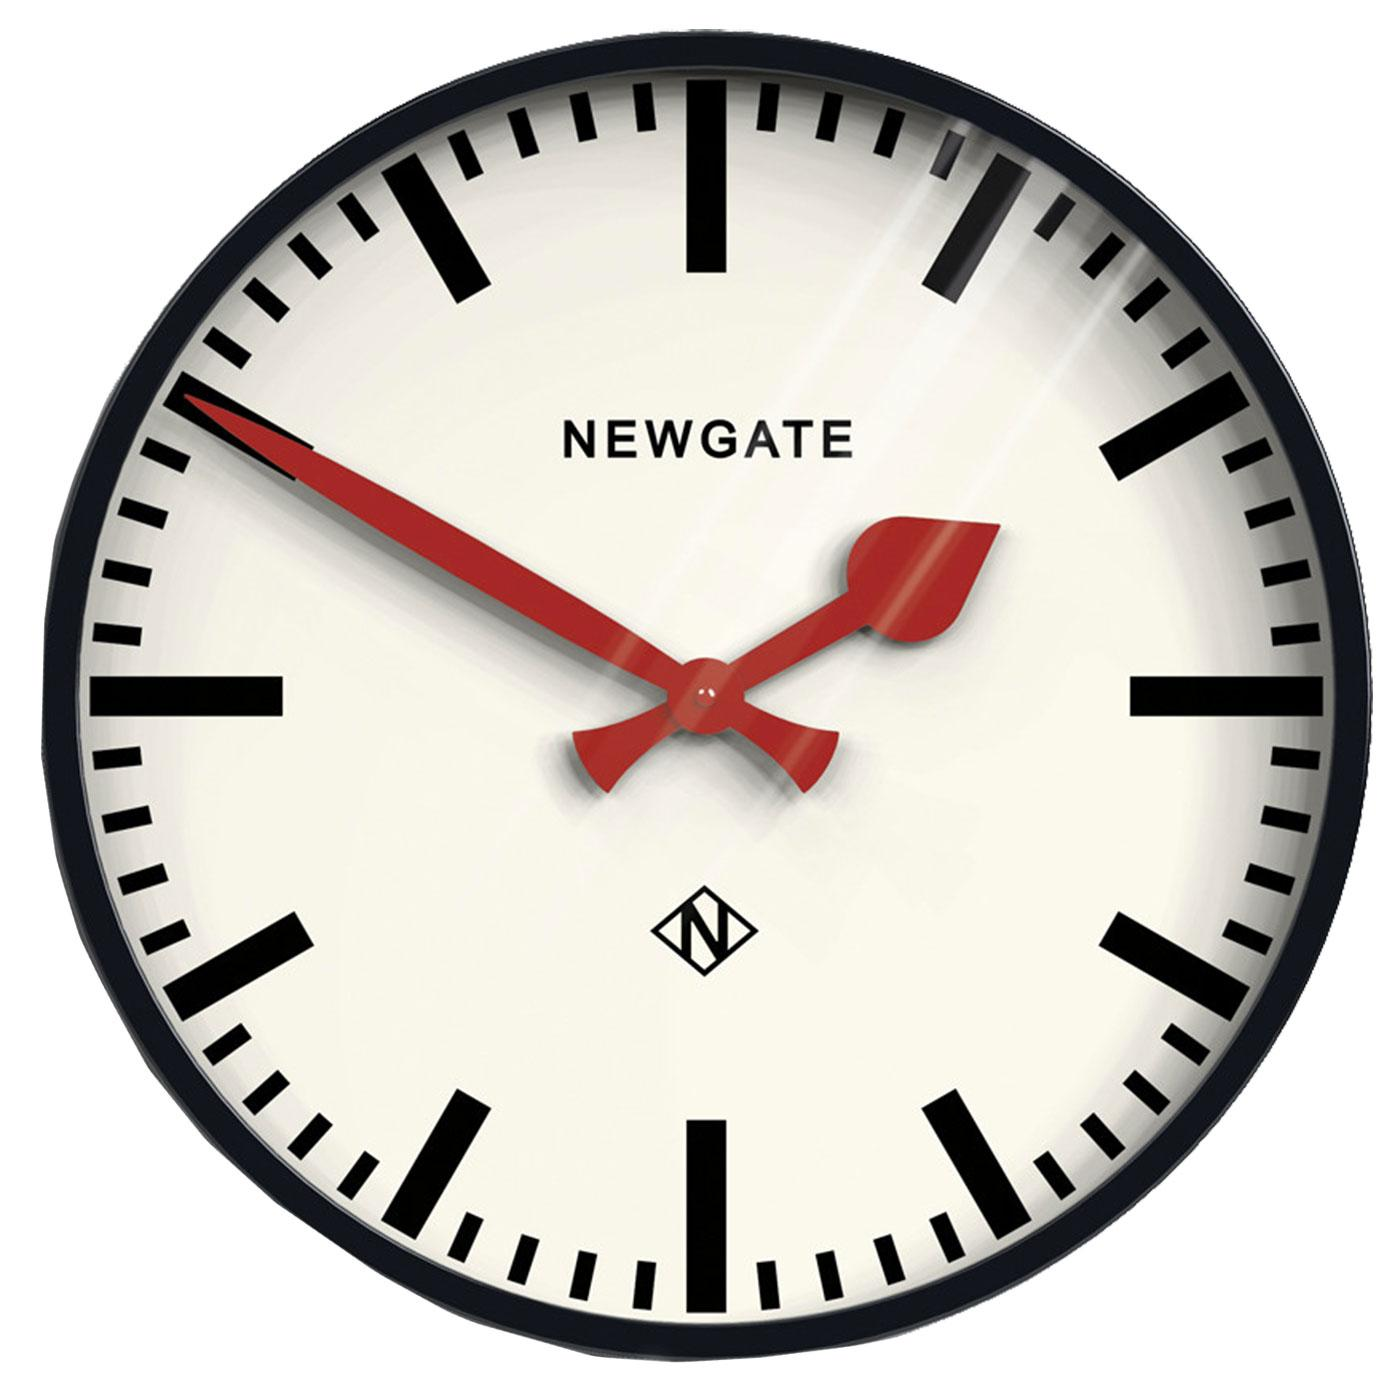 The Putney NEWGATE CLOCKS Retro 50s Station Clock